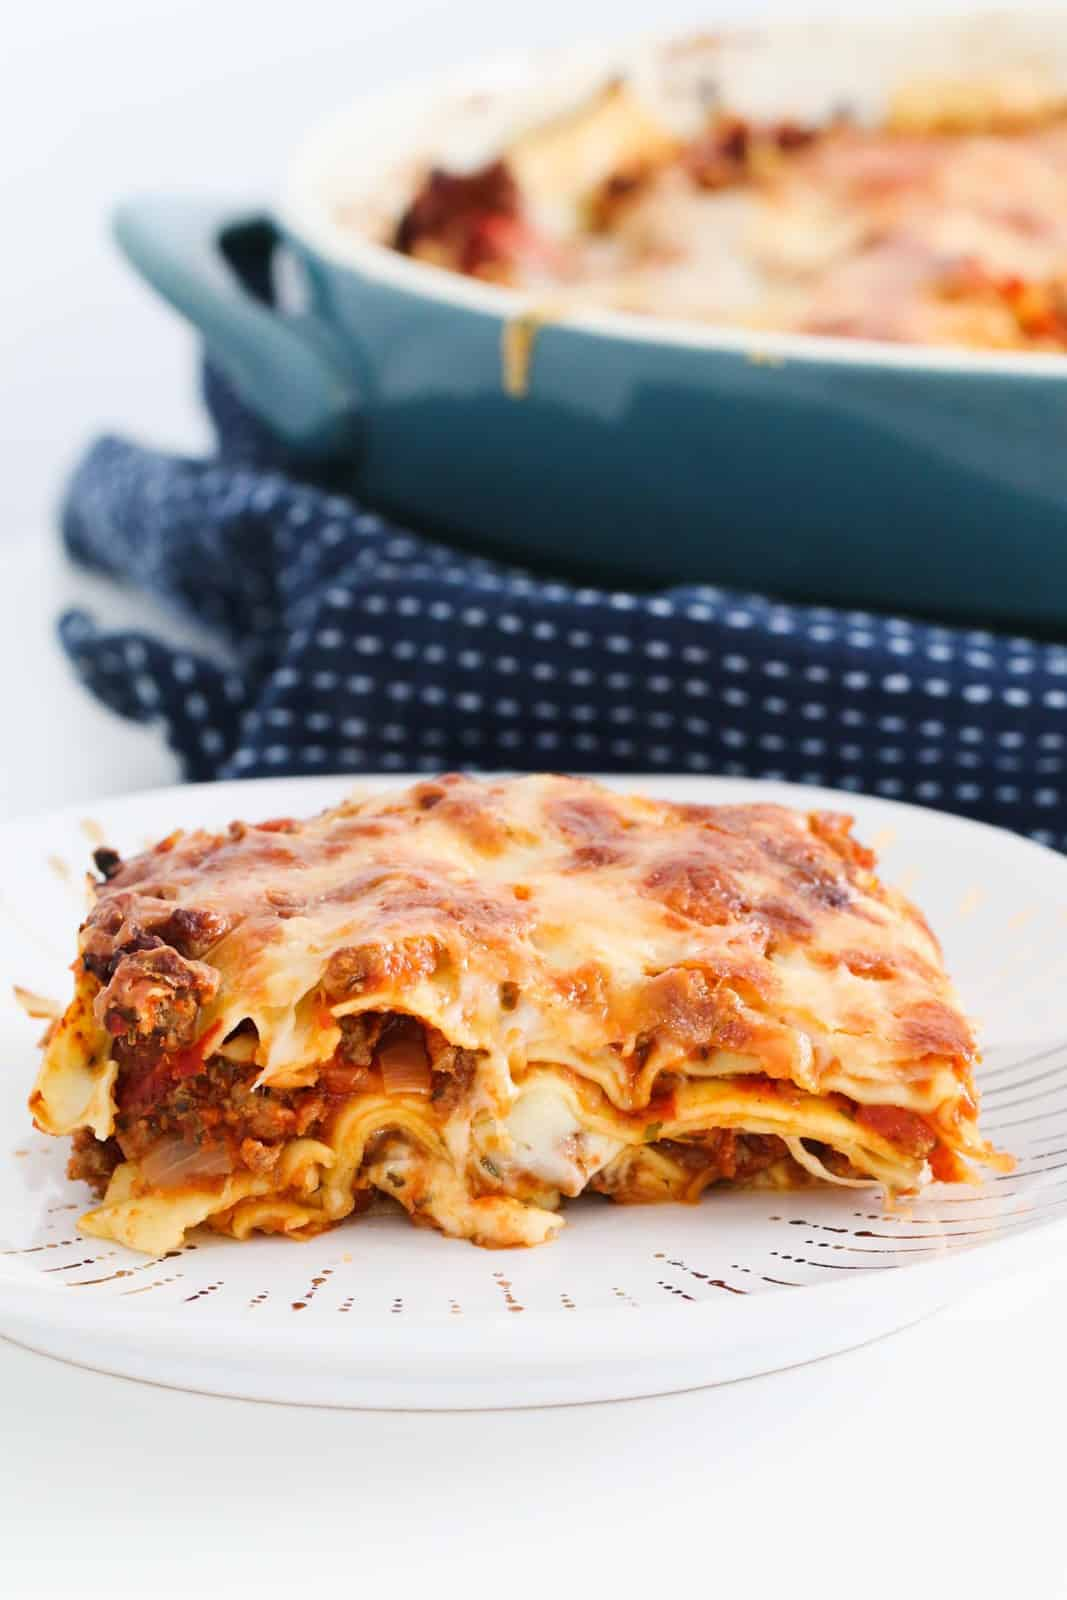 Lasagne in a baking dish, resting on a tea towel with a serving of lasagne on a plate in the foreground.